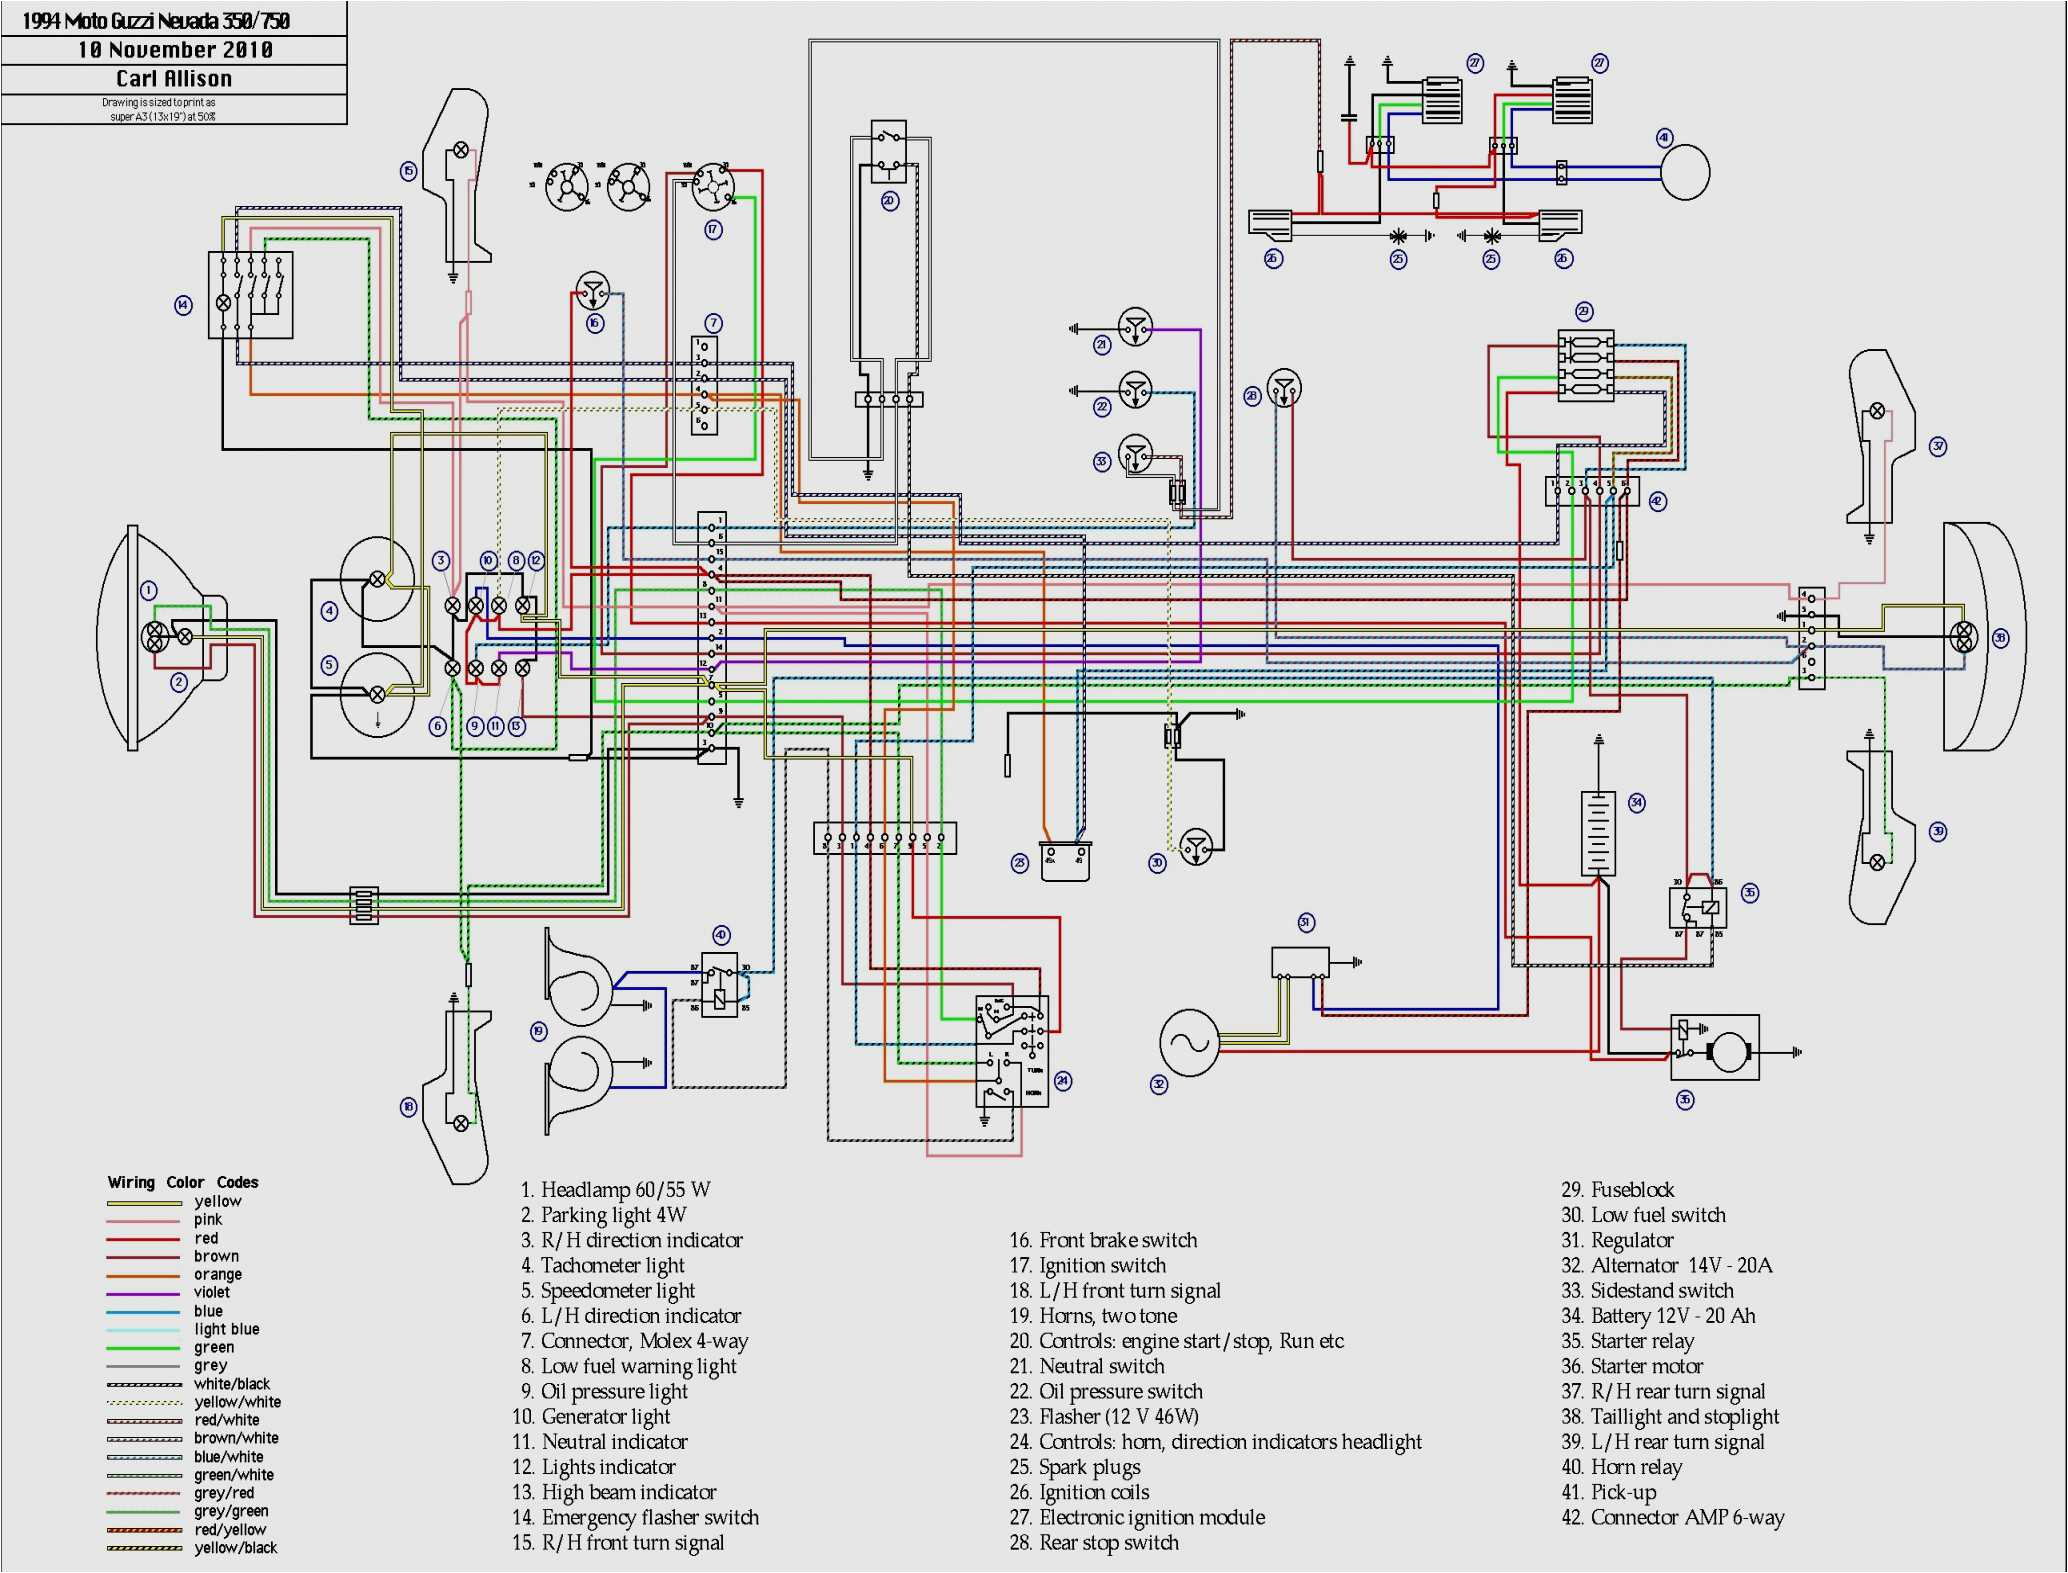 48 volt golf cart battery wiring diagram yamaha 36 volt 6 batteries 48 volt coil wiring diagram